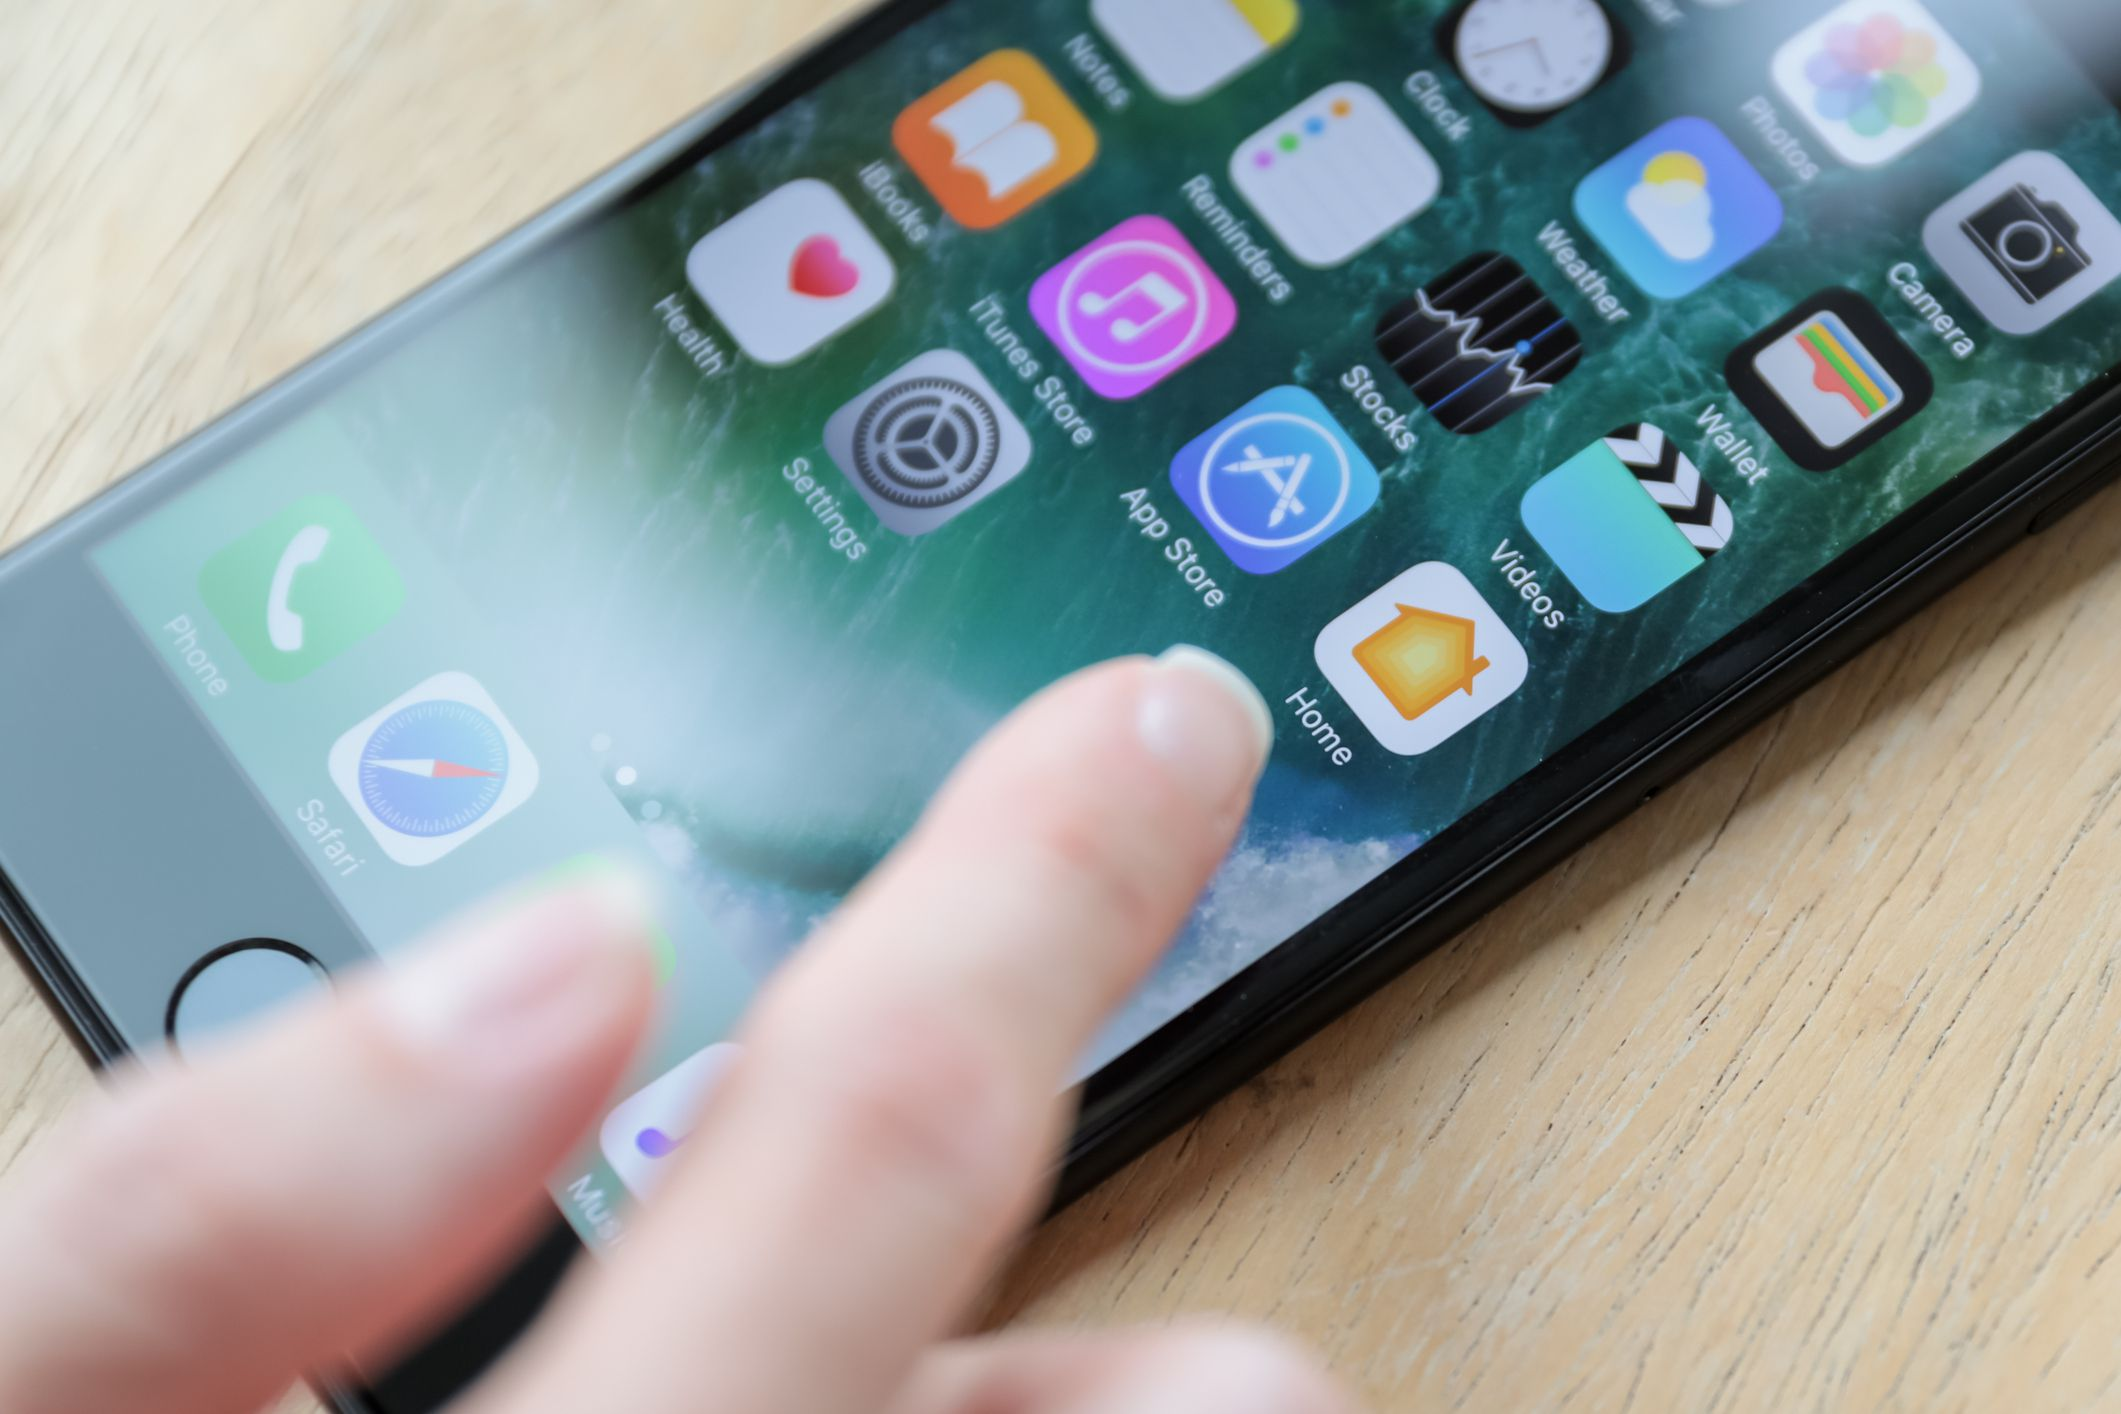 how to permanently delete iphone apps